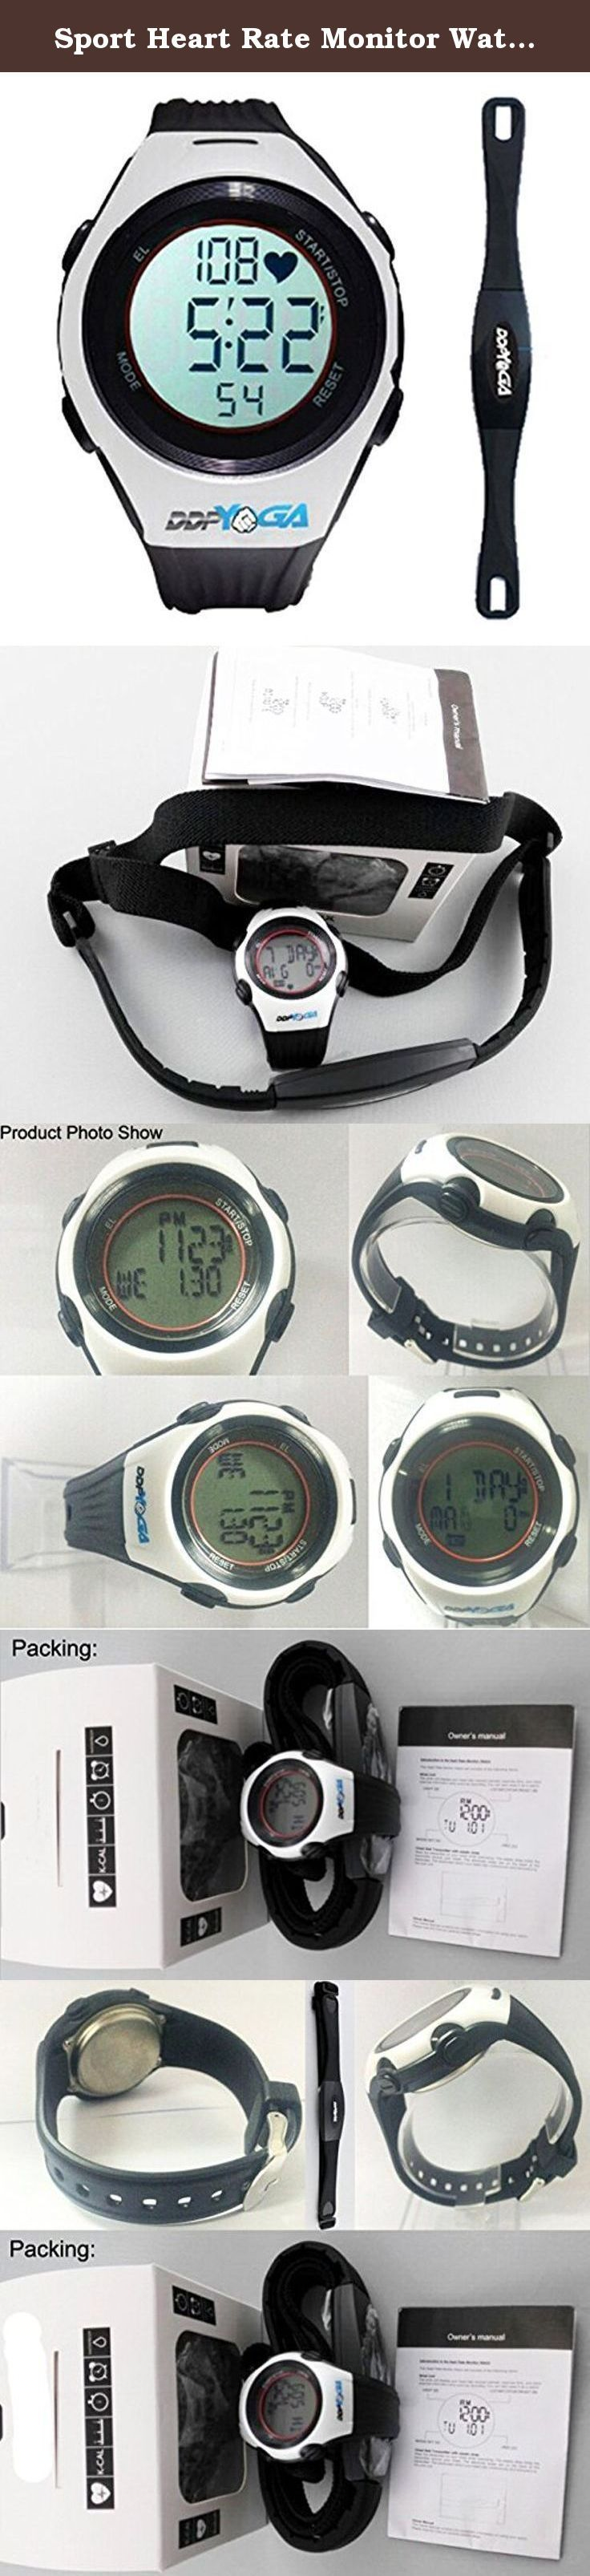 Sport Heart Rate Monitor Watch -Sports Running, Jogging,cycling, Gym Exercise Watch-timer,alarm,calorie,7 Days Memory. SORT HEART RATE MONITOR WATCH WITH HEART RATE CHEST STRAP: Multi Function for All Forms Of Indoor-Outdoor Activities. The item was designed with all functions and features necessary. User-Friendly and Affordable, Clock/ Auto Calendar - Dual daily alarms - 1/100 sec Chronograph - Countdown Timer - BMI calculation 12/24 hour format - EL Backlight.